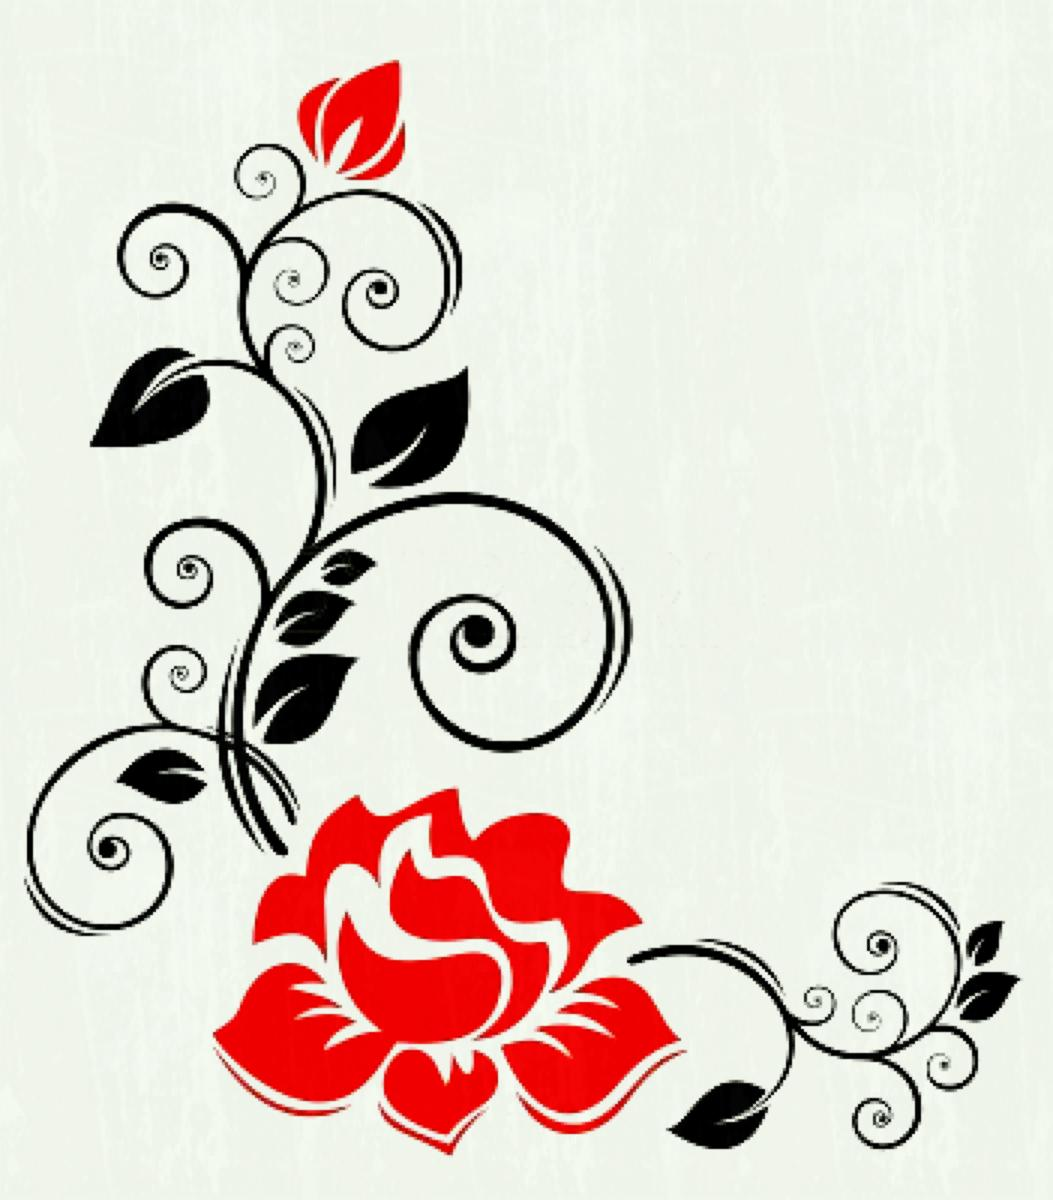 Flower Design Clipart At Getdrawings Free For Personal Use